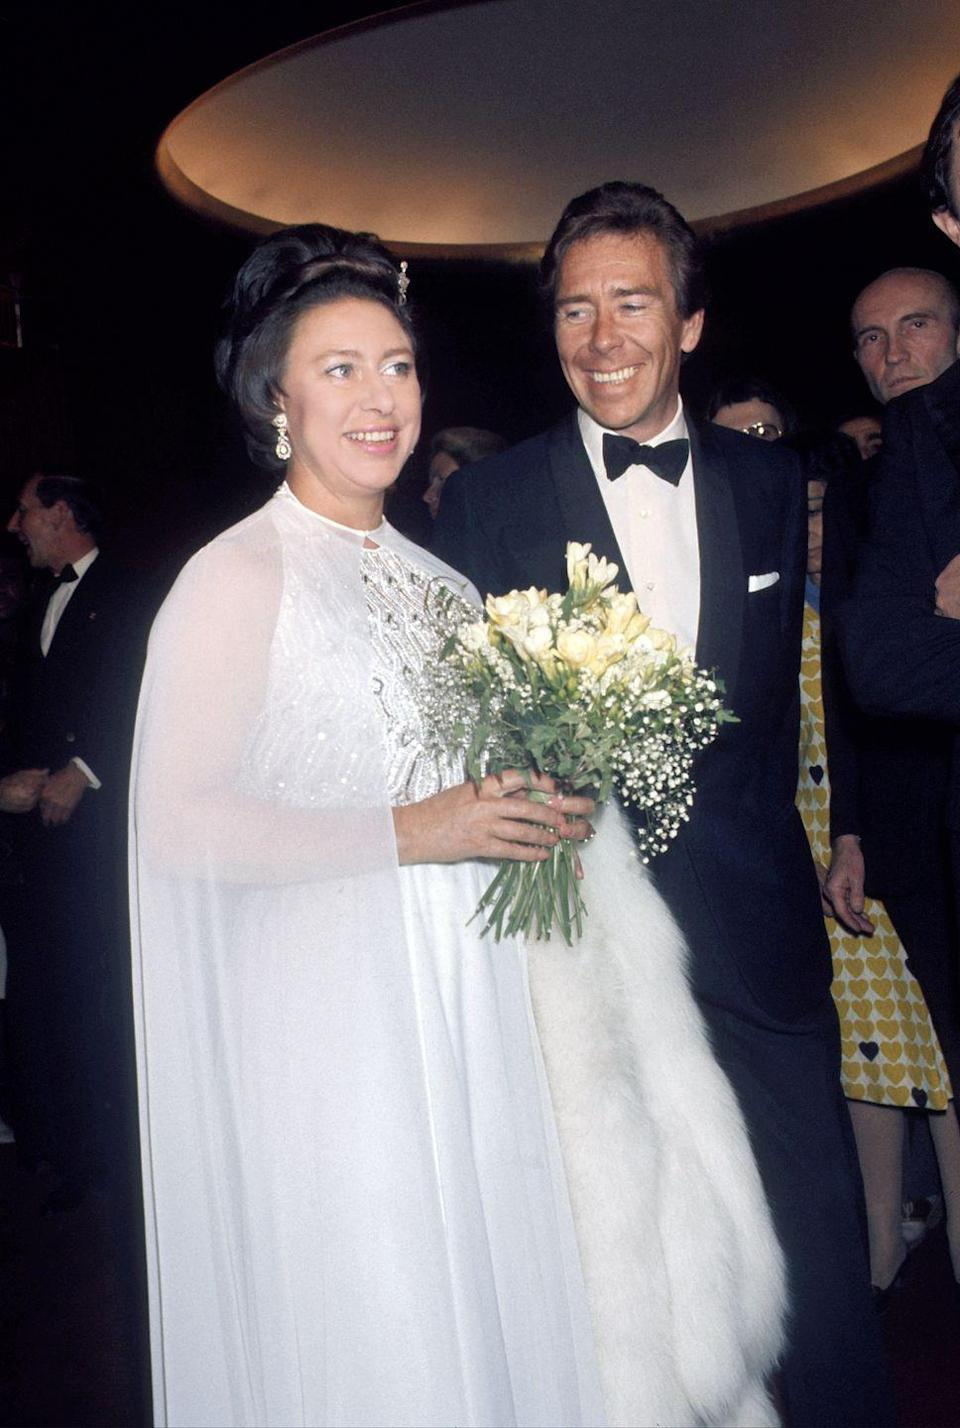 <p>Princess Margaret was a real trendsetter. In this vintage photo from 1974, the princess and Anthony Armstrong-Jones attended a Royal Ballet performance in New York City. Margaret sported a white embroidered gown paired with a sheer, matching cape. <br></p>